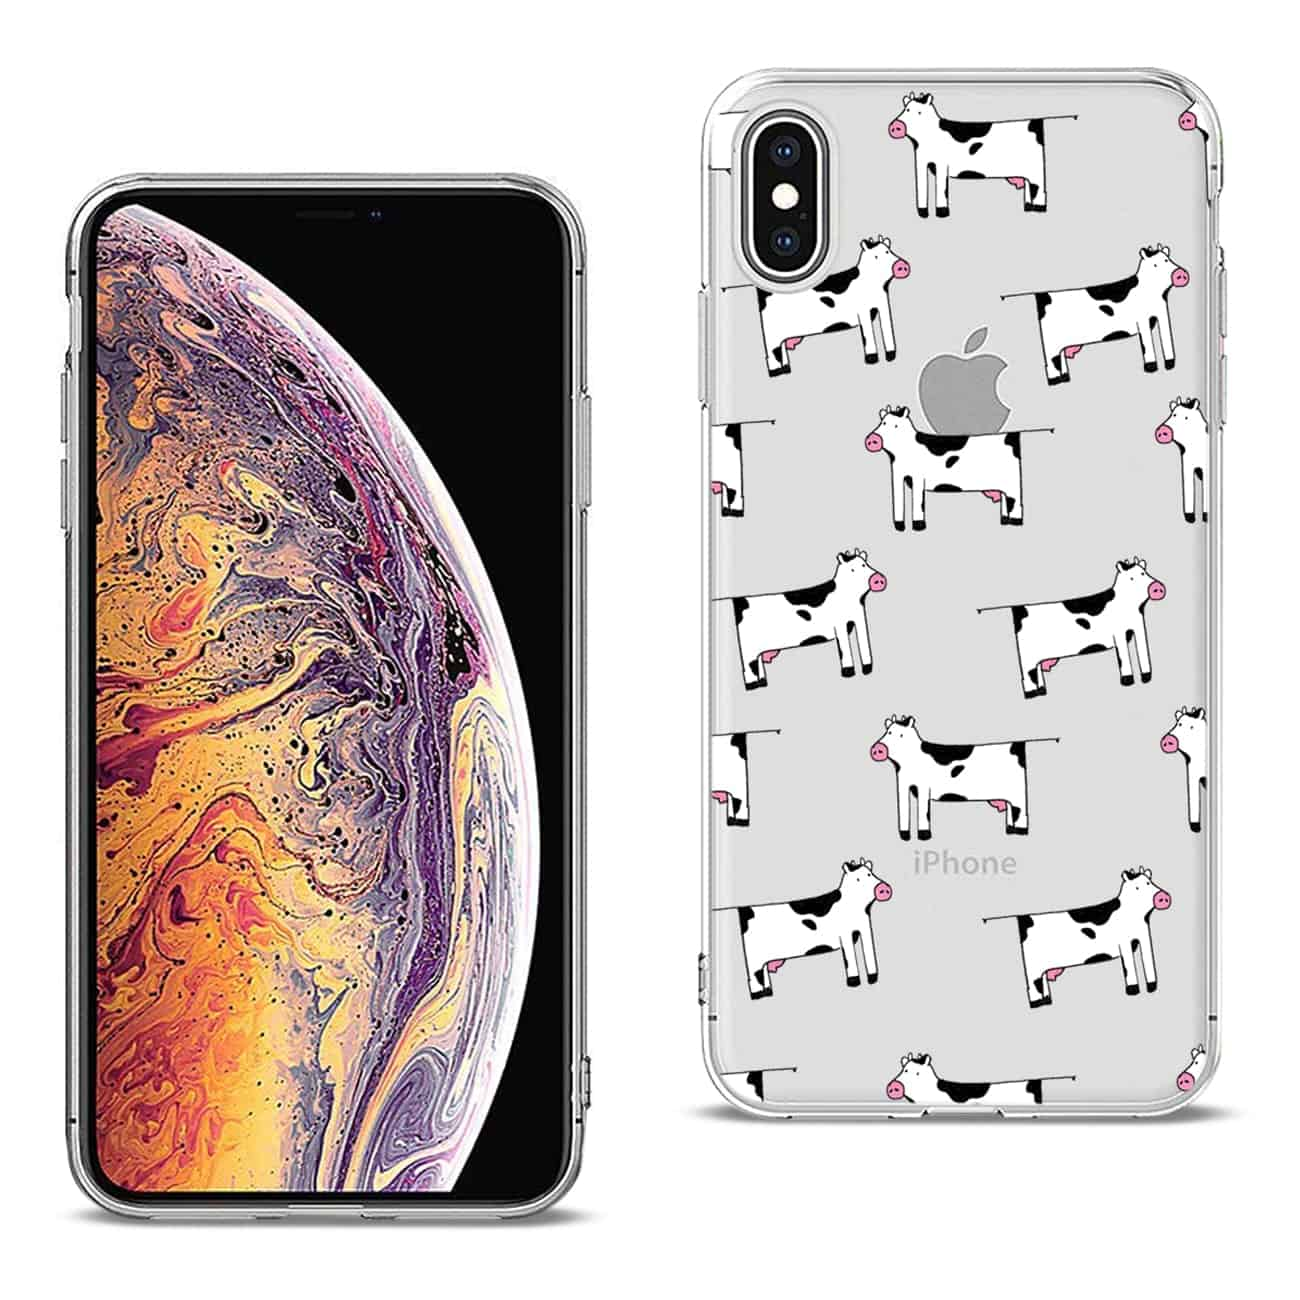 Apple iPhone XS MAX Design Air Cushion Case With Cow In Blue